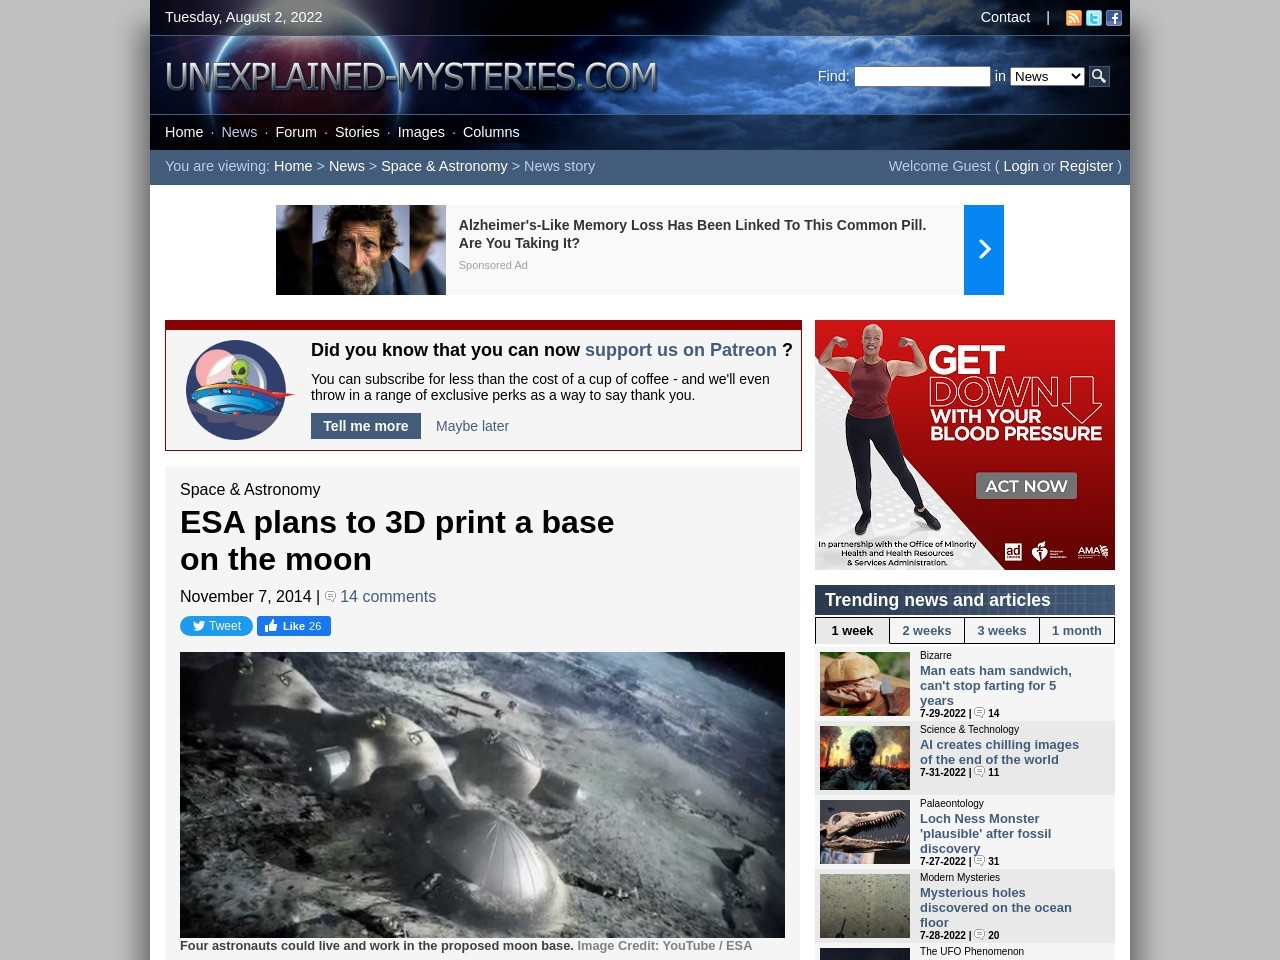 ESA plans to 3D print a base on the moon